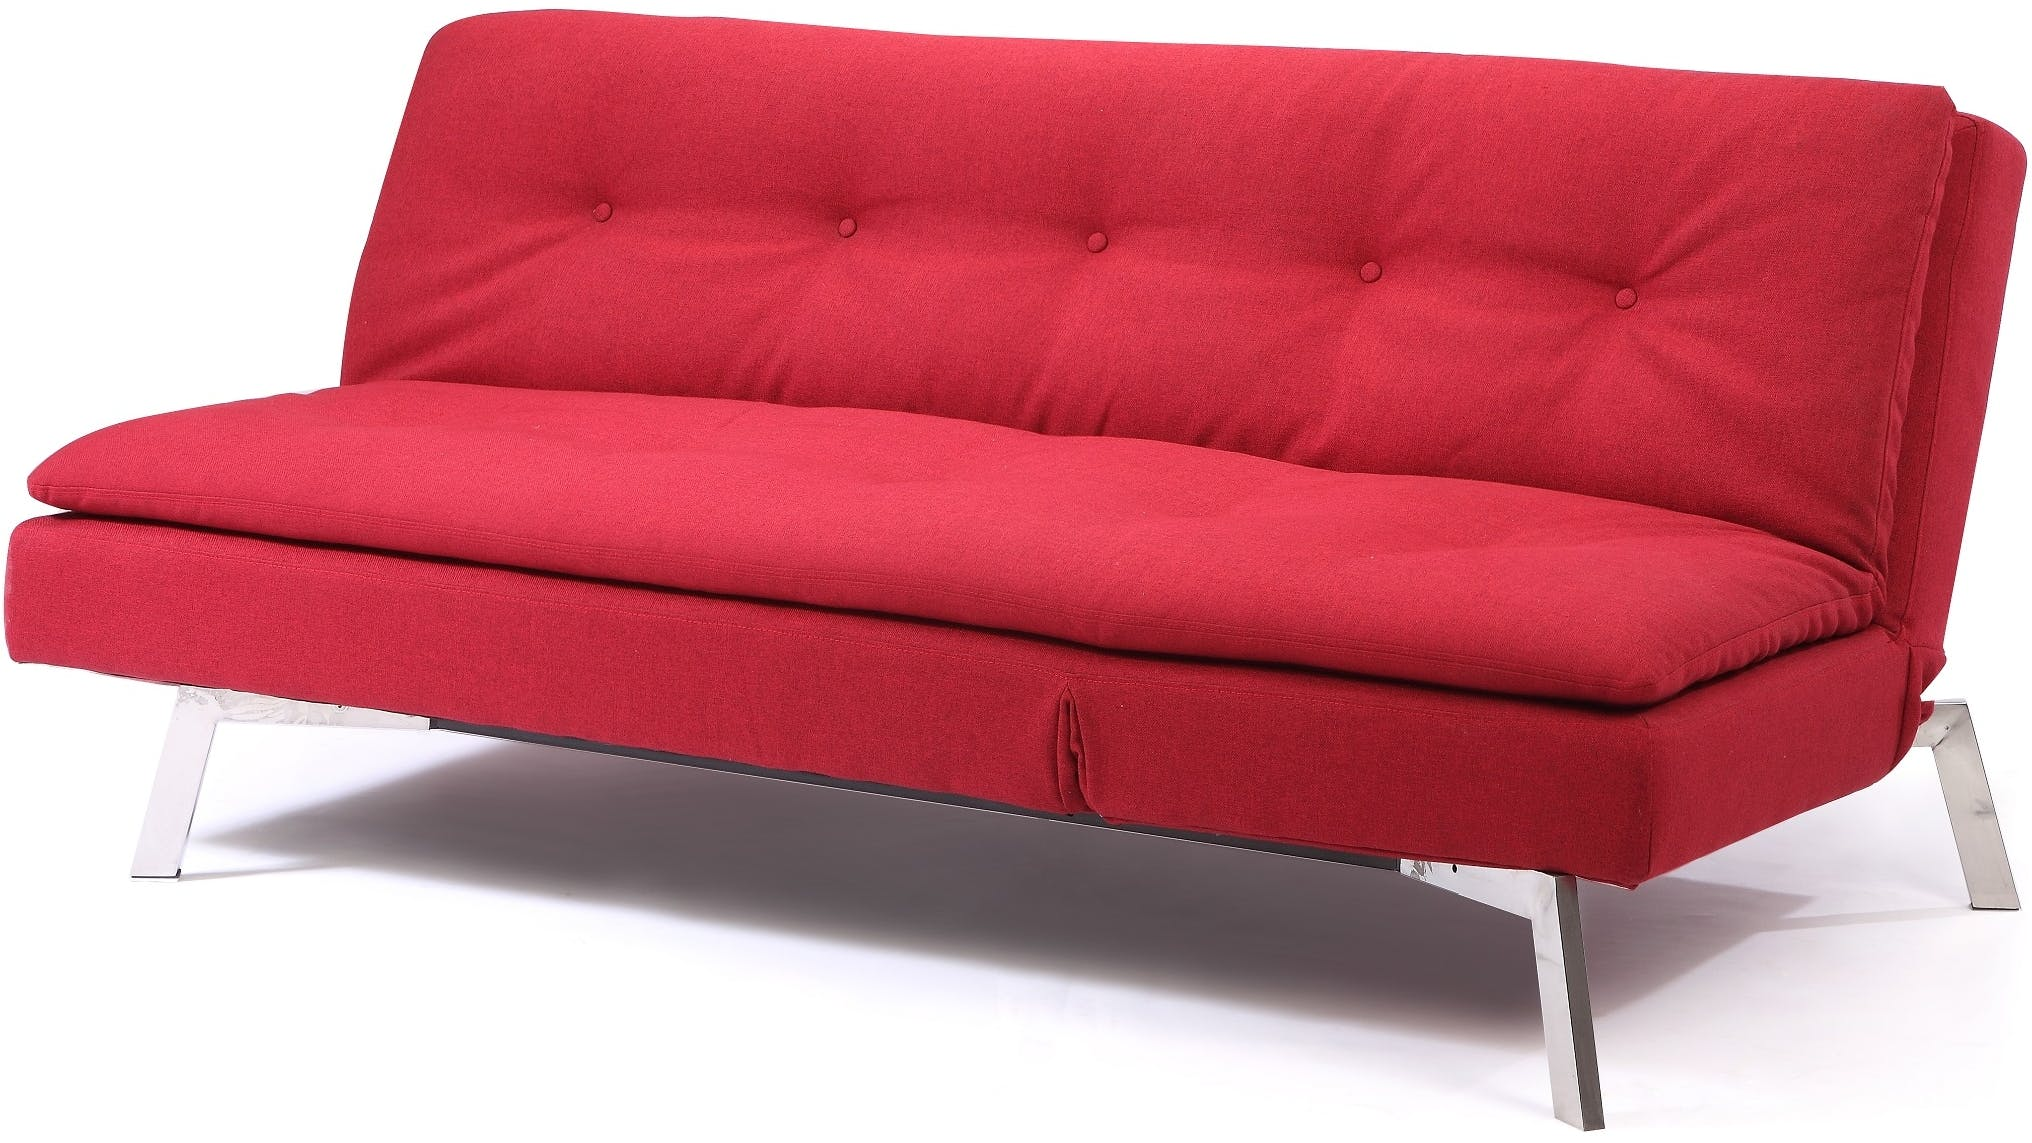 shelby sofa bed harvey norman malaysia